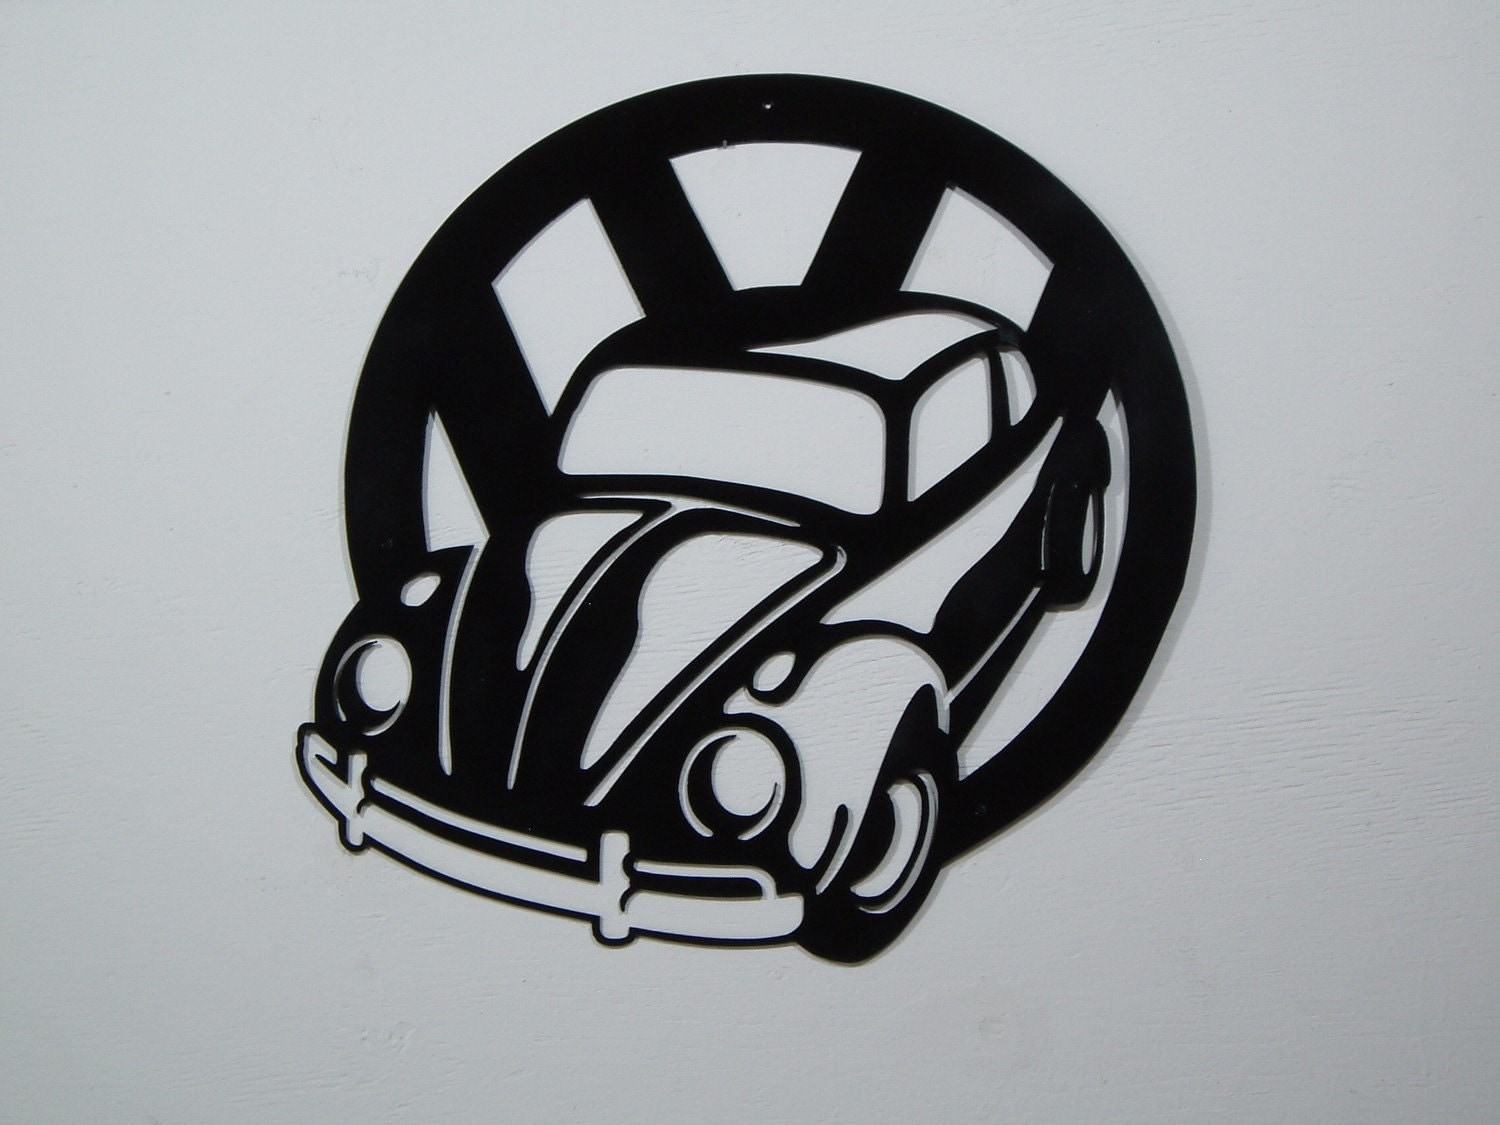 Cow Wall Stickers Vintage Volkswagen Symbol